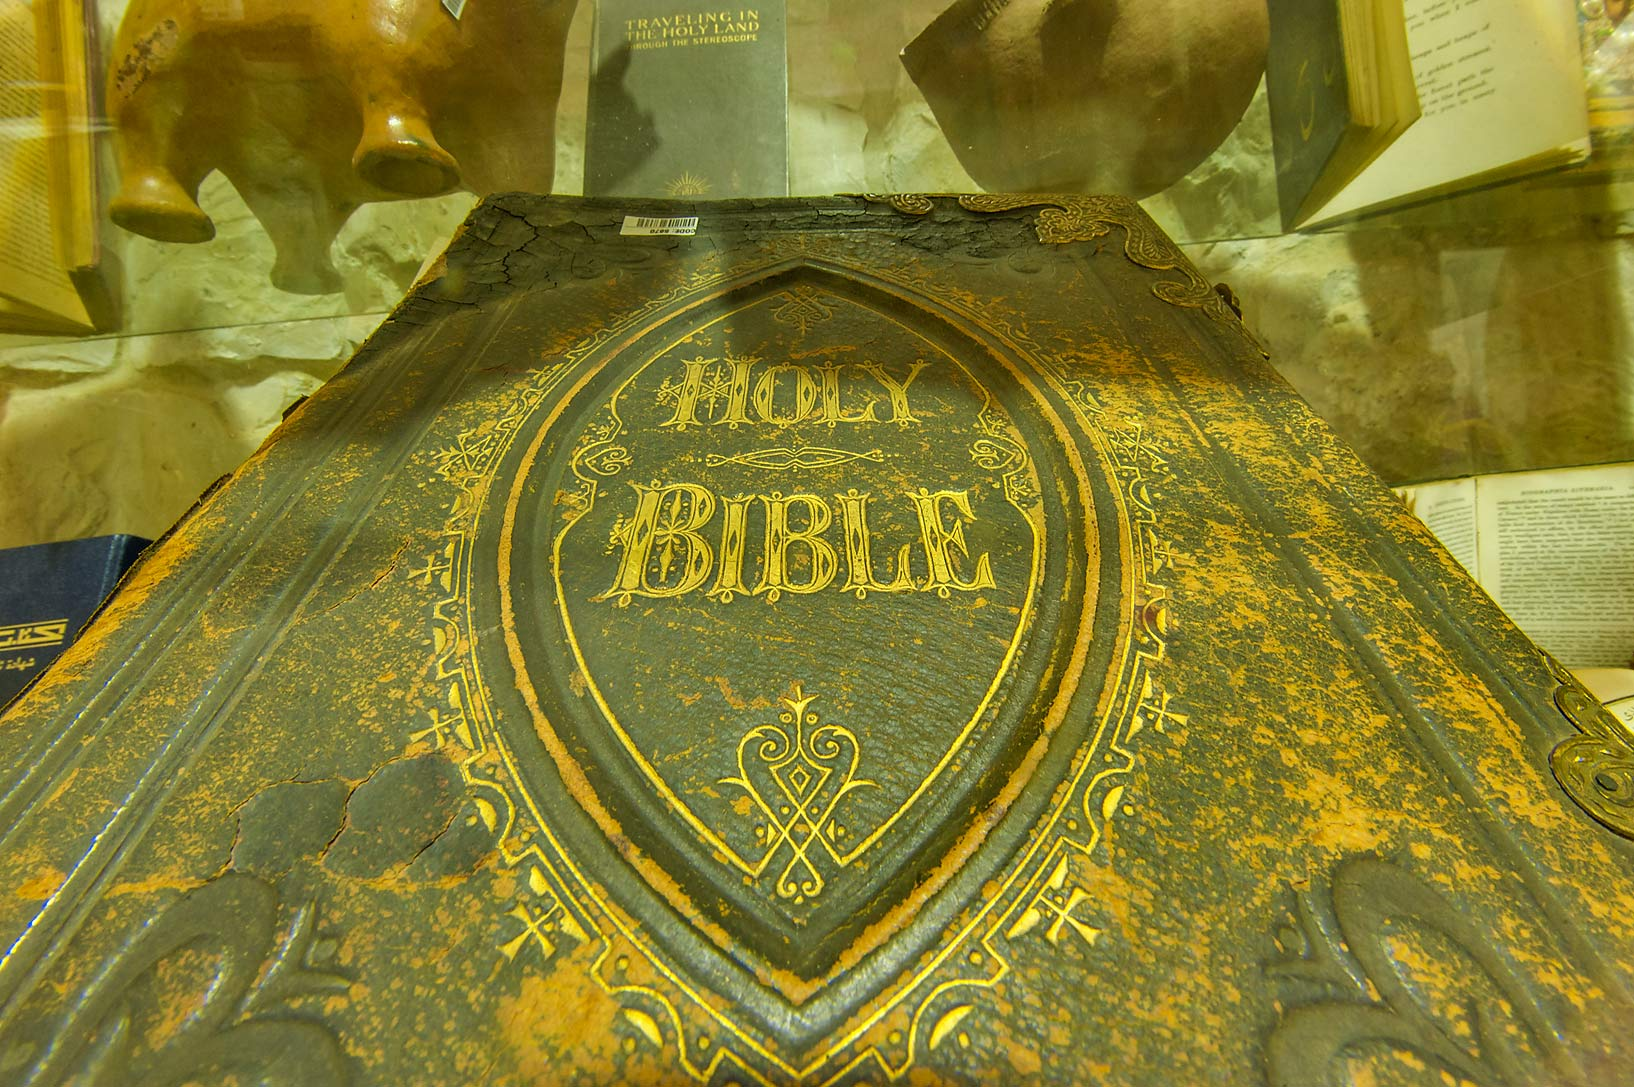 Holy Bible on display in Sheikh Faisal Bin Qassim...Museum near Al-Shahaniya. Doha, Qatar